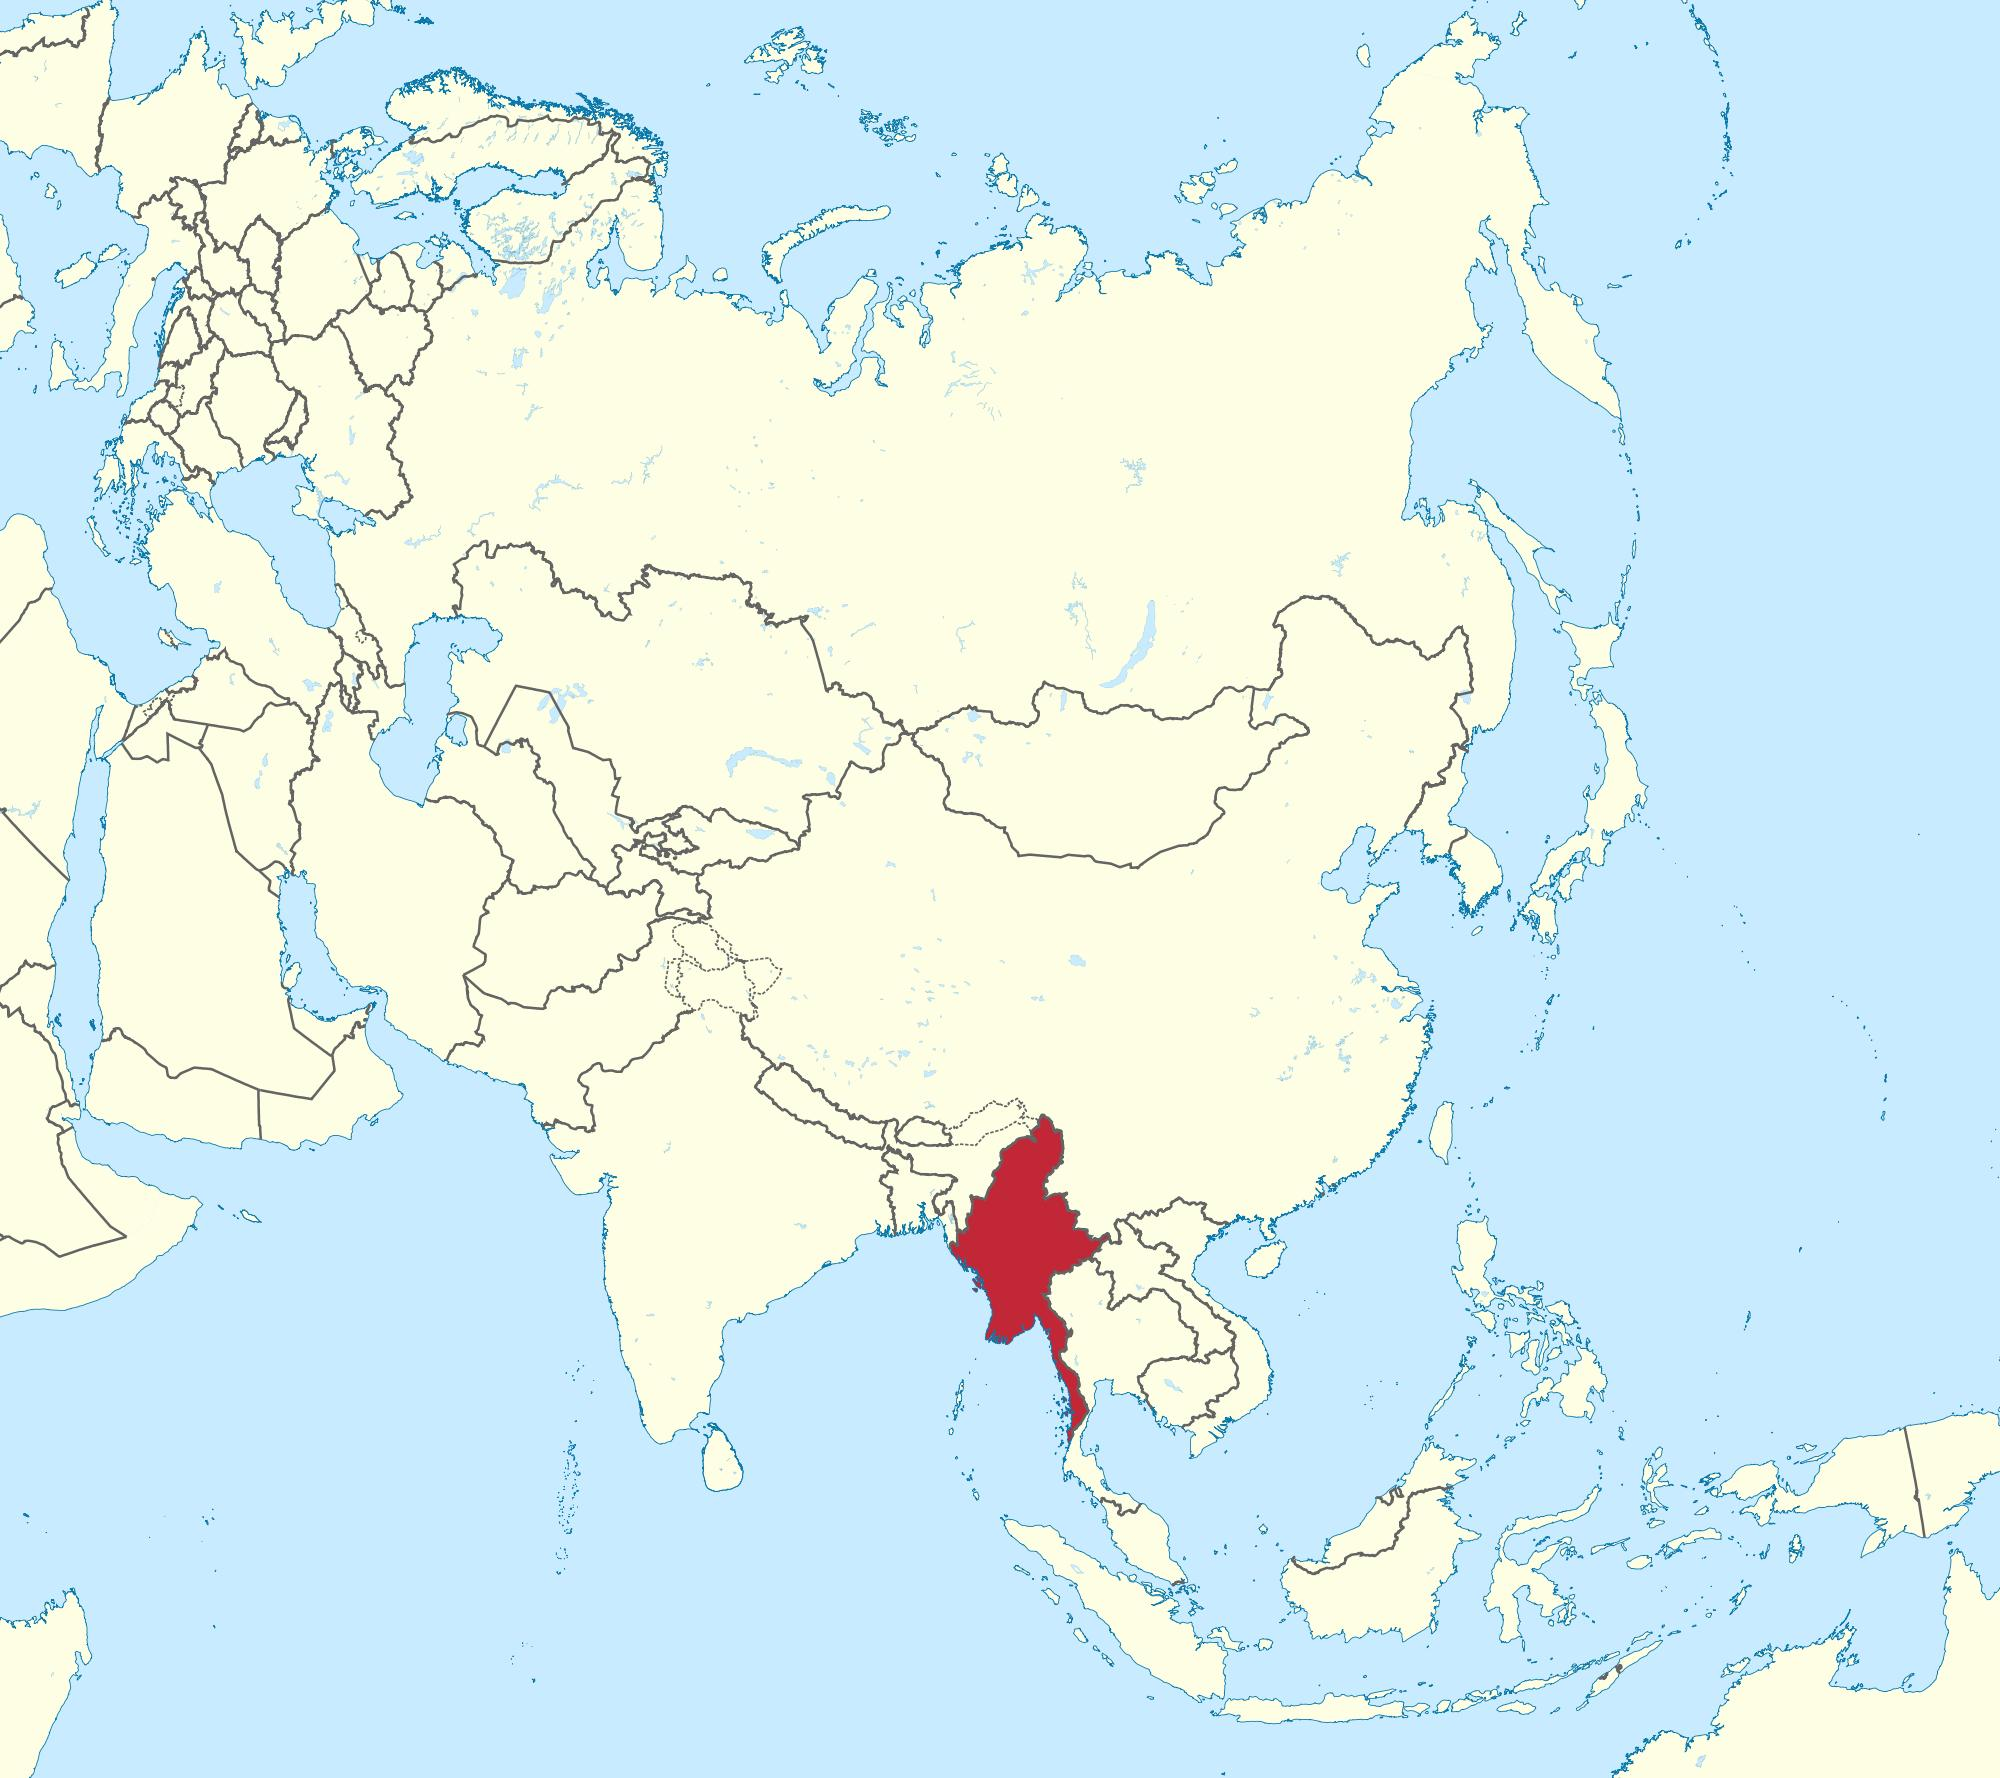 Burma in world map world map myanmar burma south eastern asia asia world map myanmar burma gumiabroncs Image collections